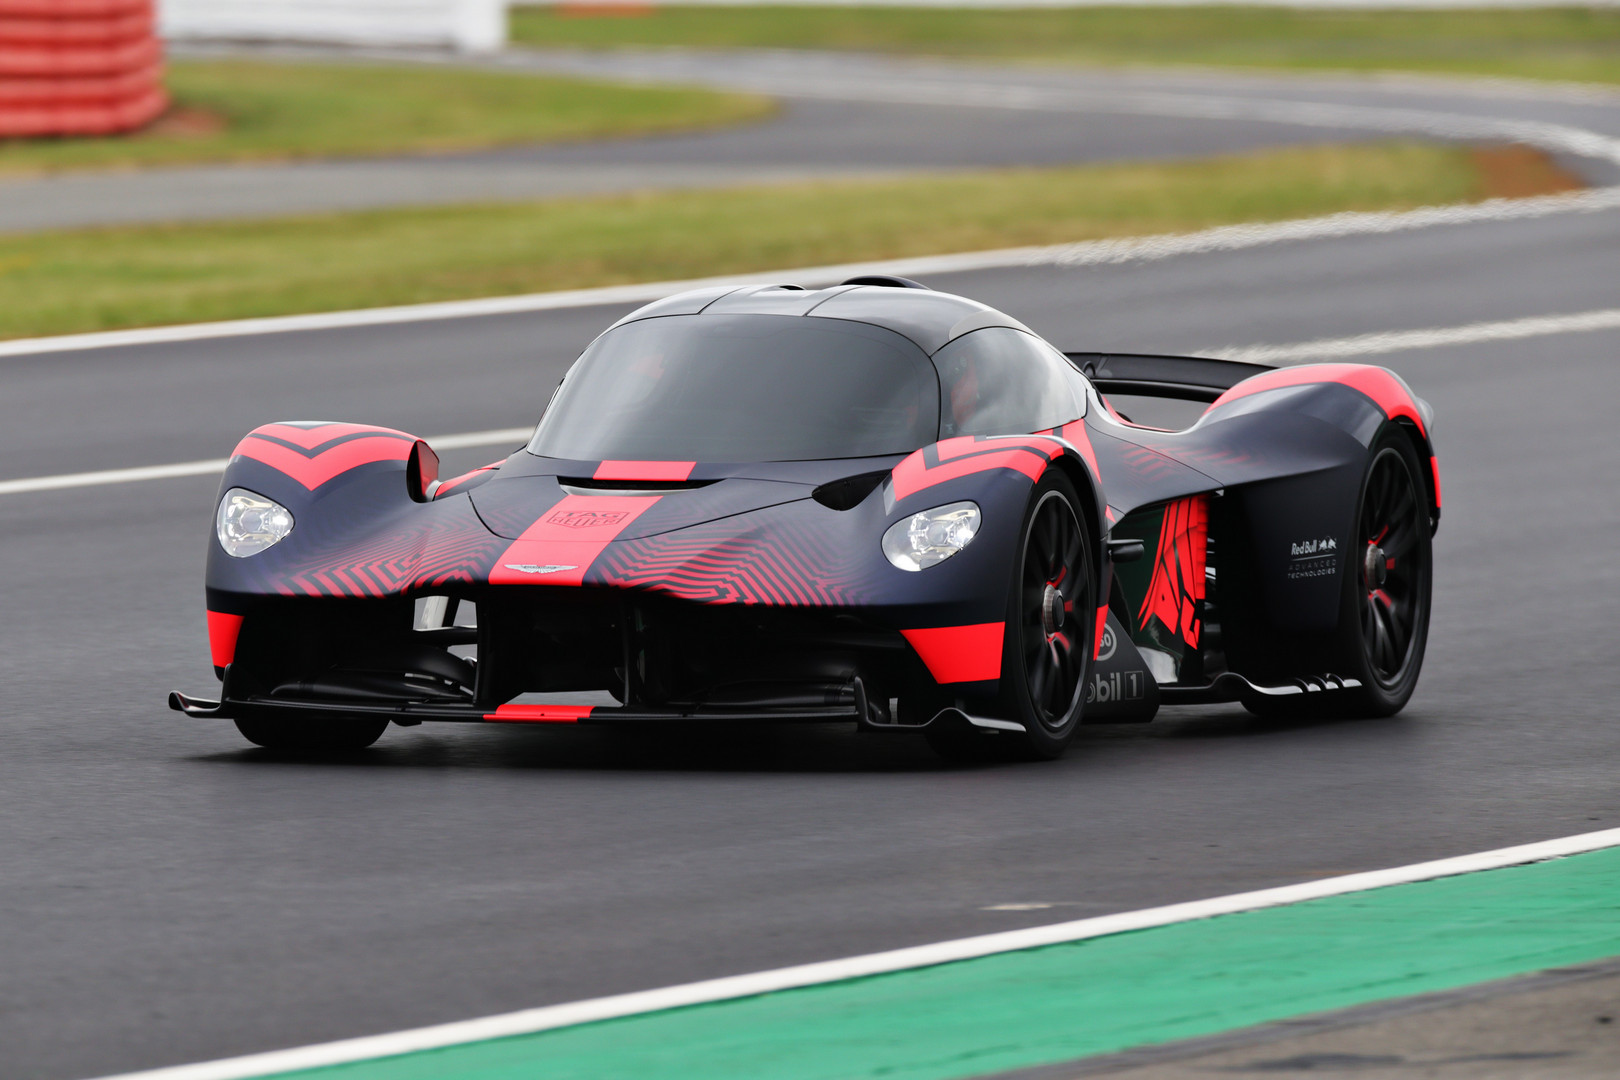 Aston Martin Valkyrie Makes Public Debut at British Grand Prix 2019